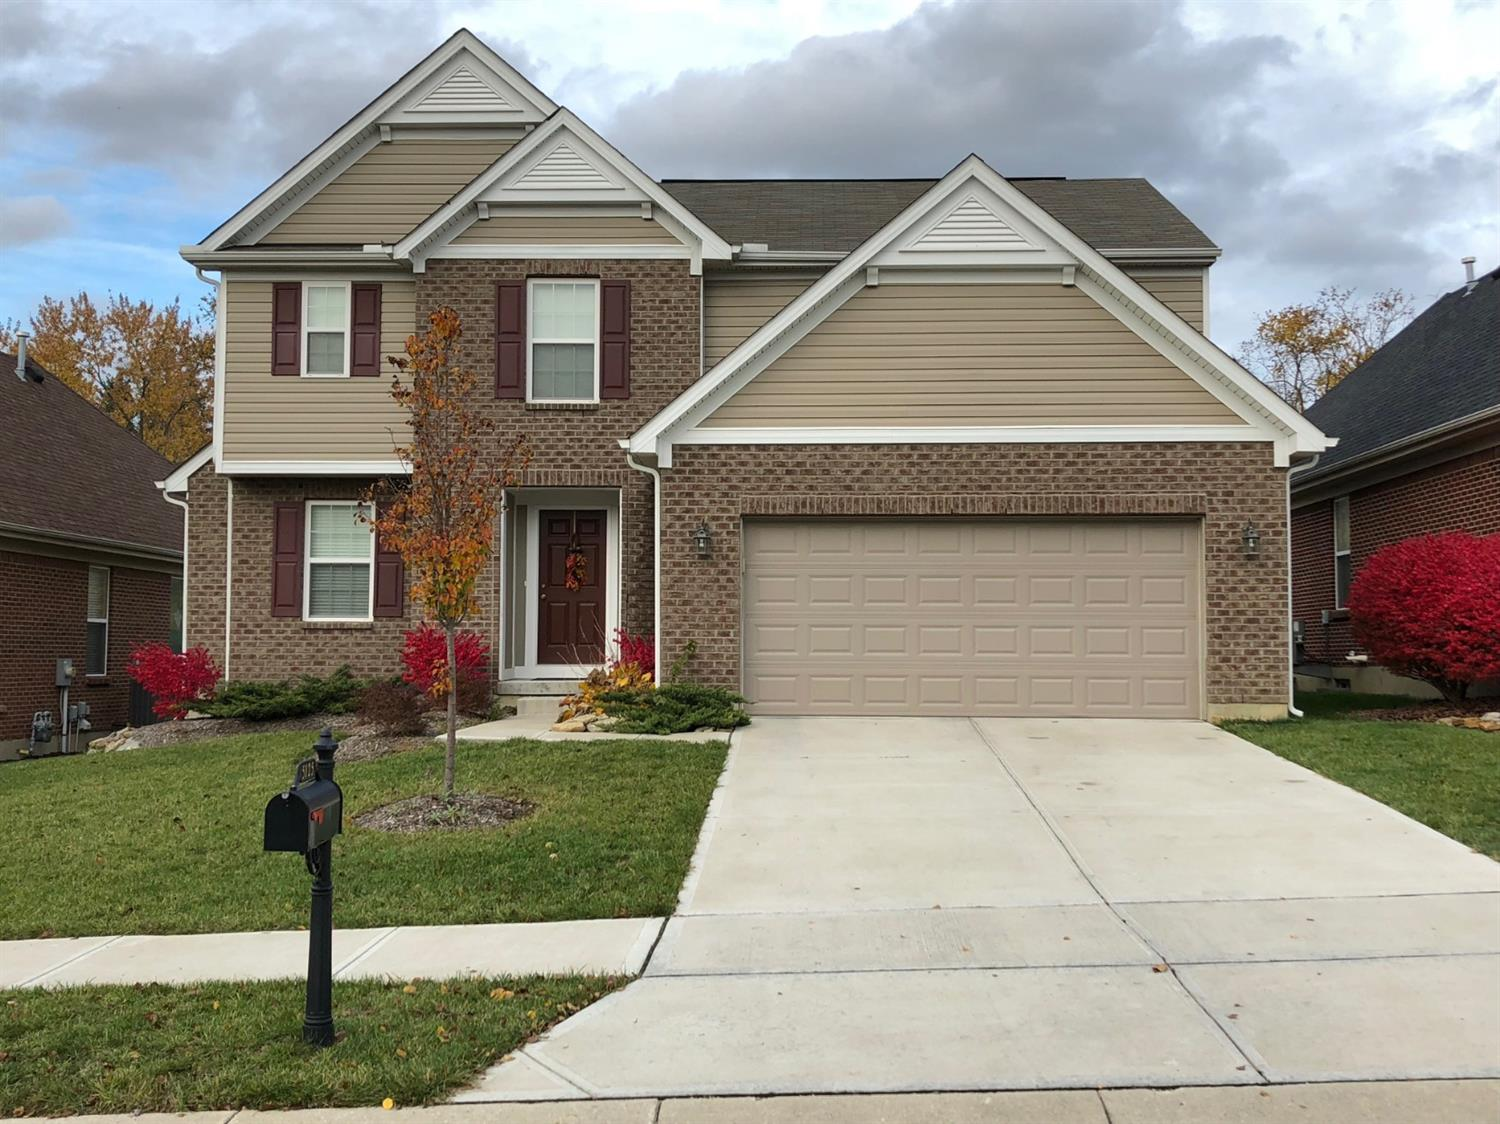 Property for sale at 5125 Long Meadow Drive, Middletown,  OH 45005